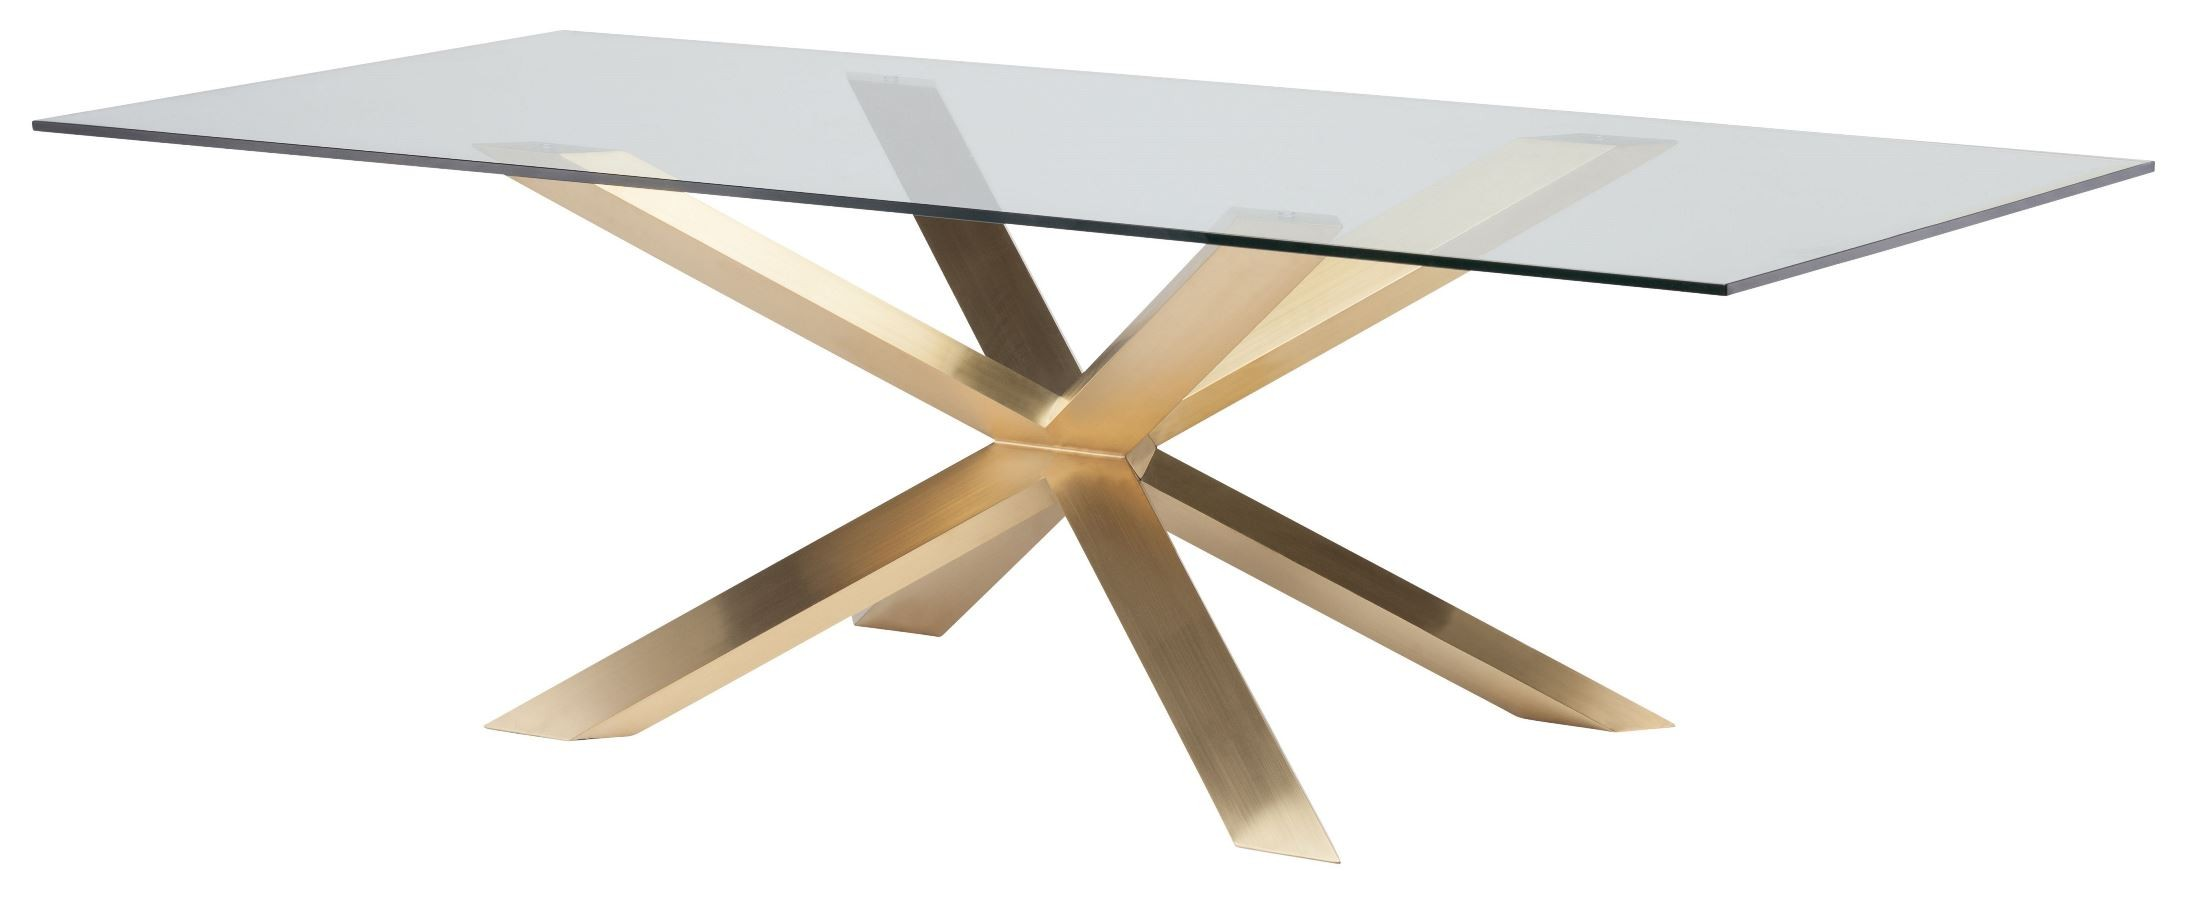 Couture 94 Quot Brushed Gold Clear Glass Dining Table From